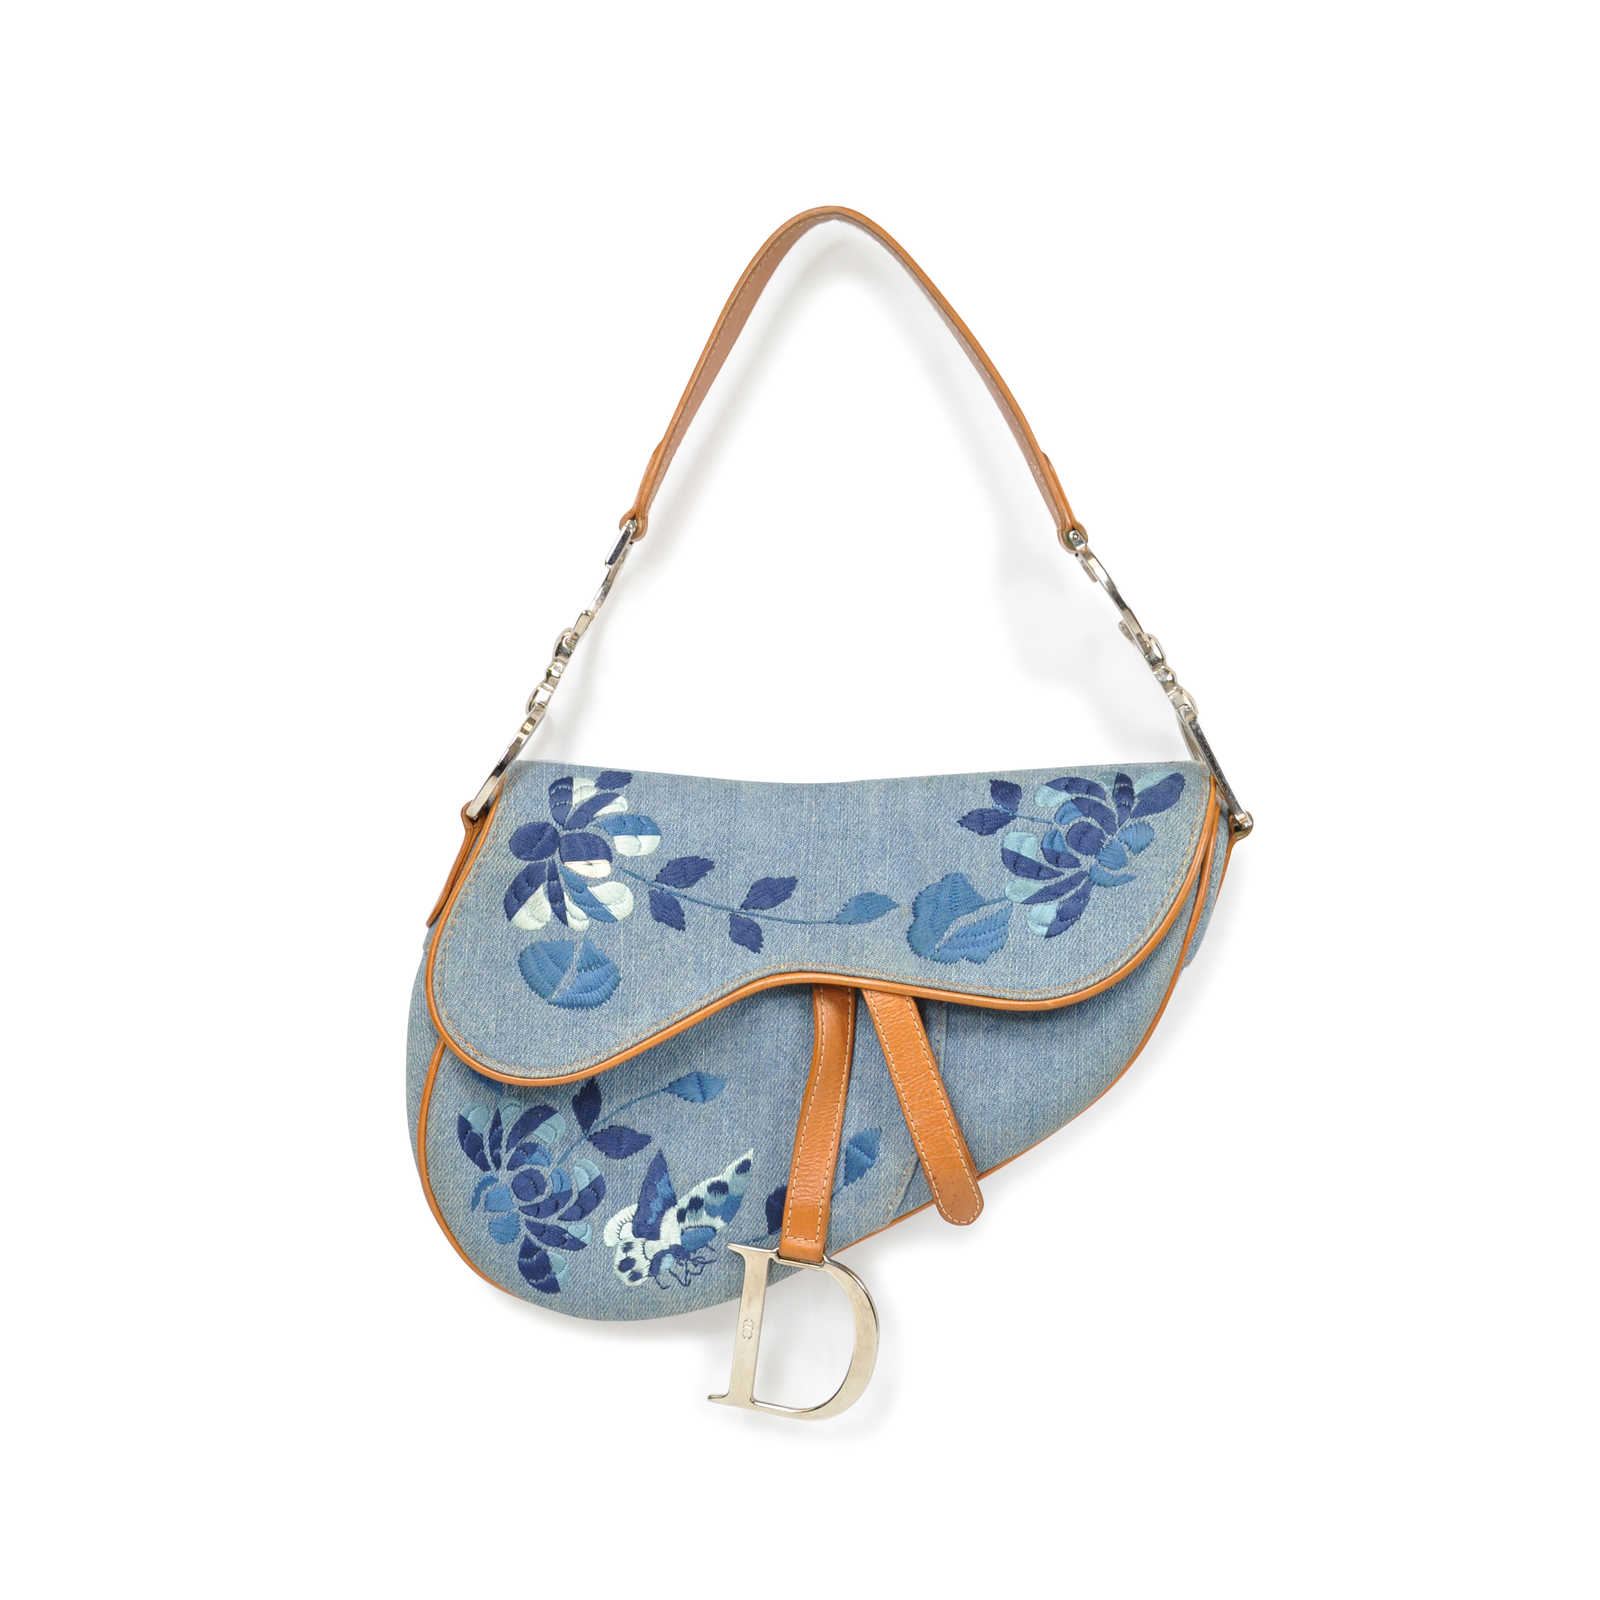 594cd339c9b Authentic Pre Owned Christian Dior Embroidered Saddle Bag (PSS-094-00010)  ...